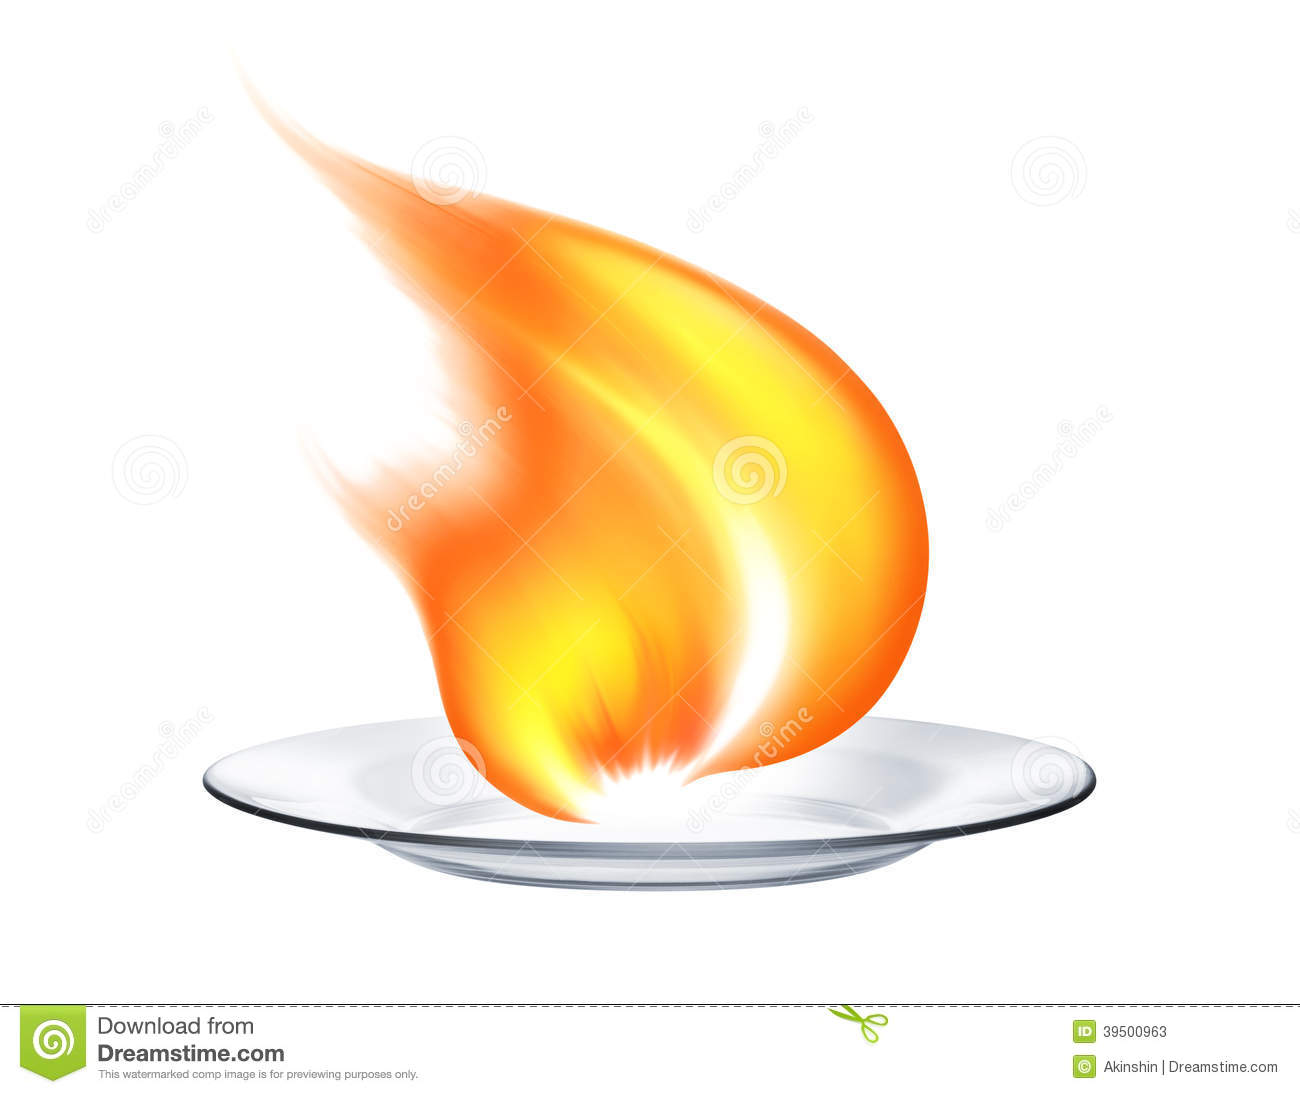 Fire in the plate